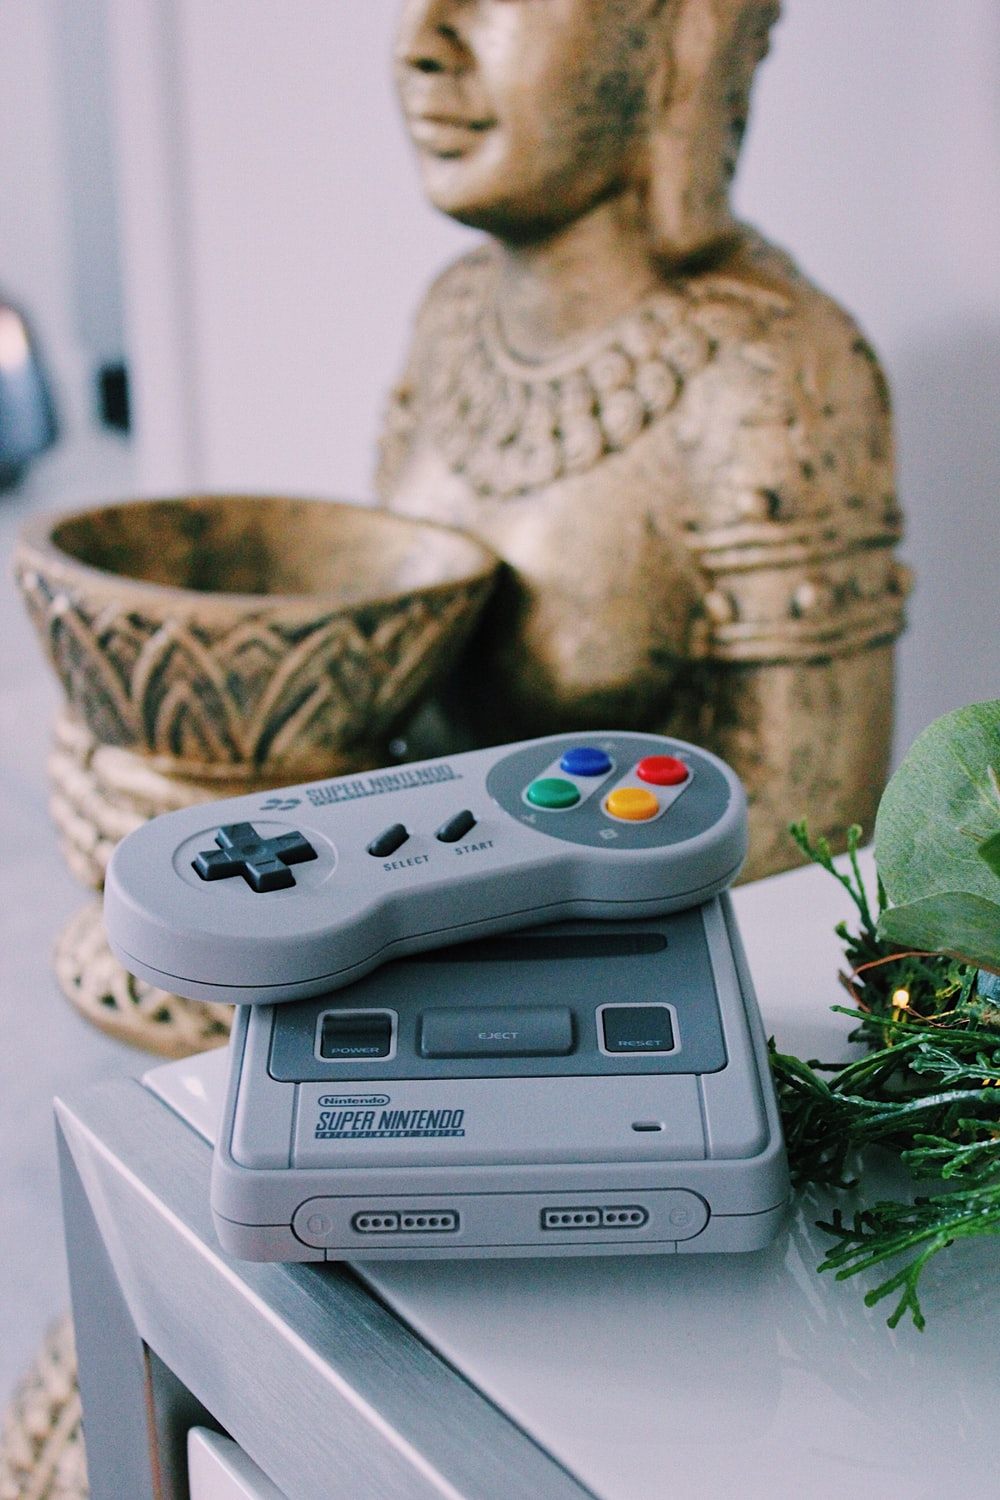 gray Super Nintendo game console with controller on table